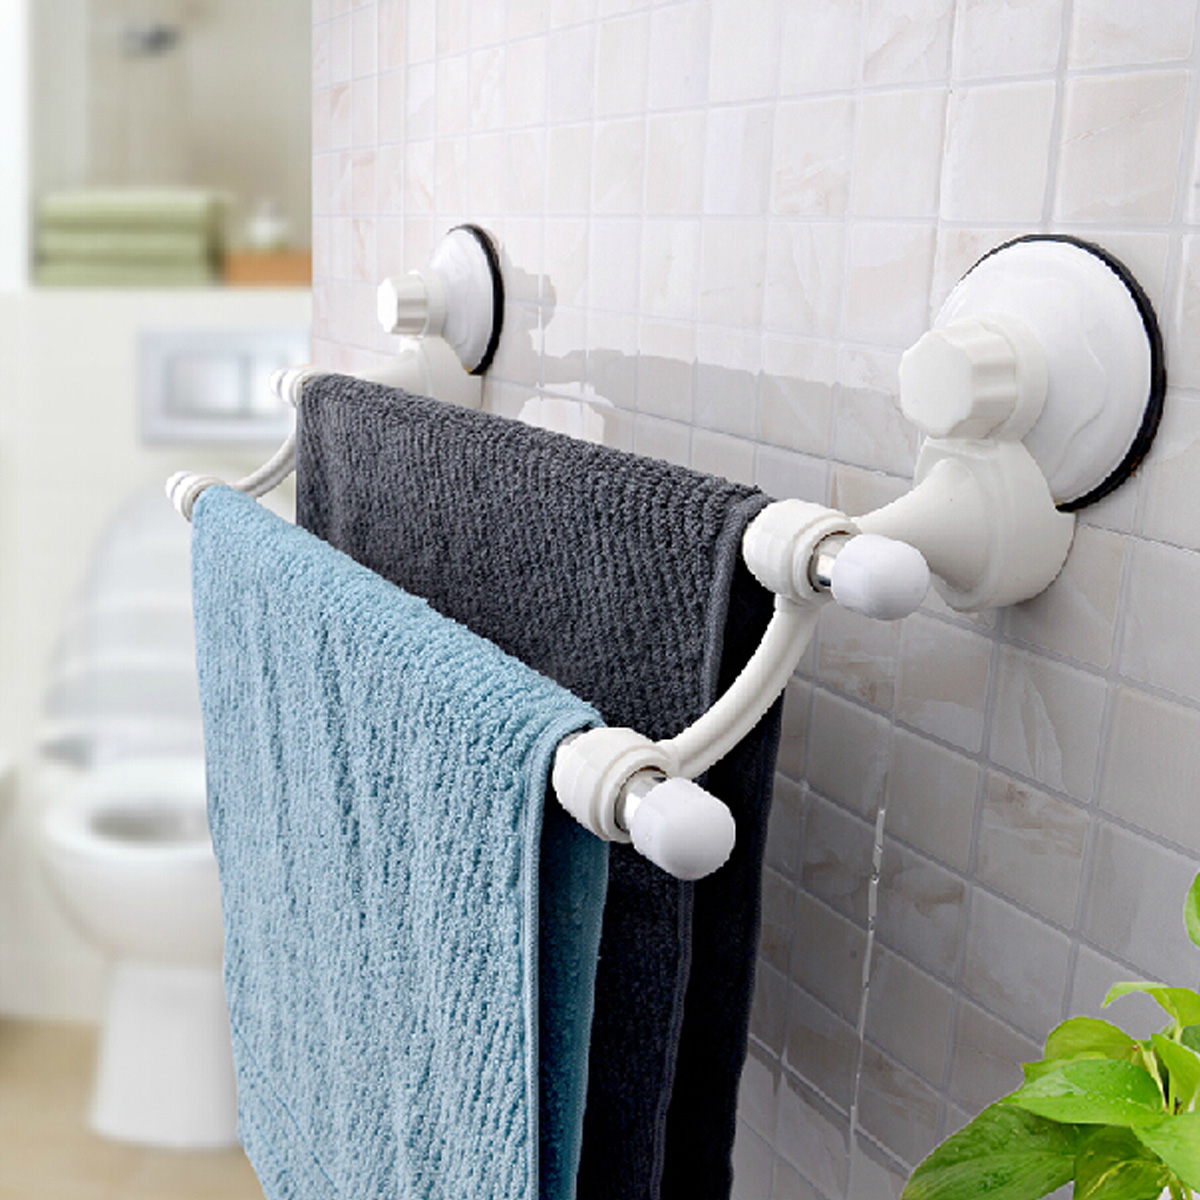 Suction Cup Wall Mounted Bathroom Double Towel Rail Holder Storage ...